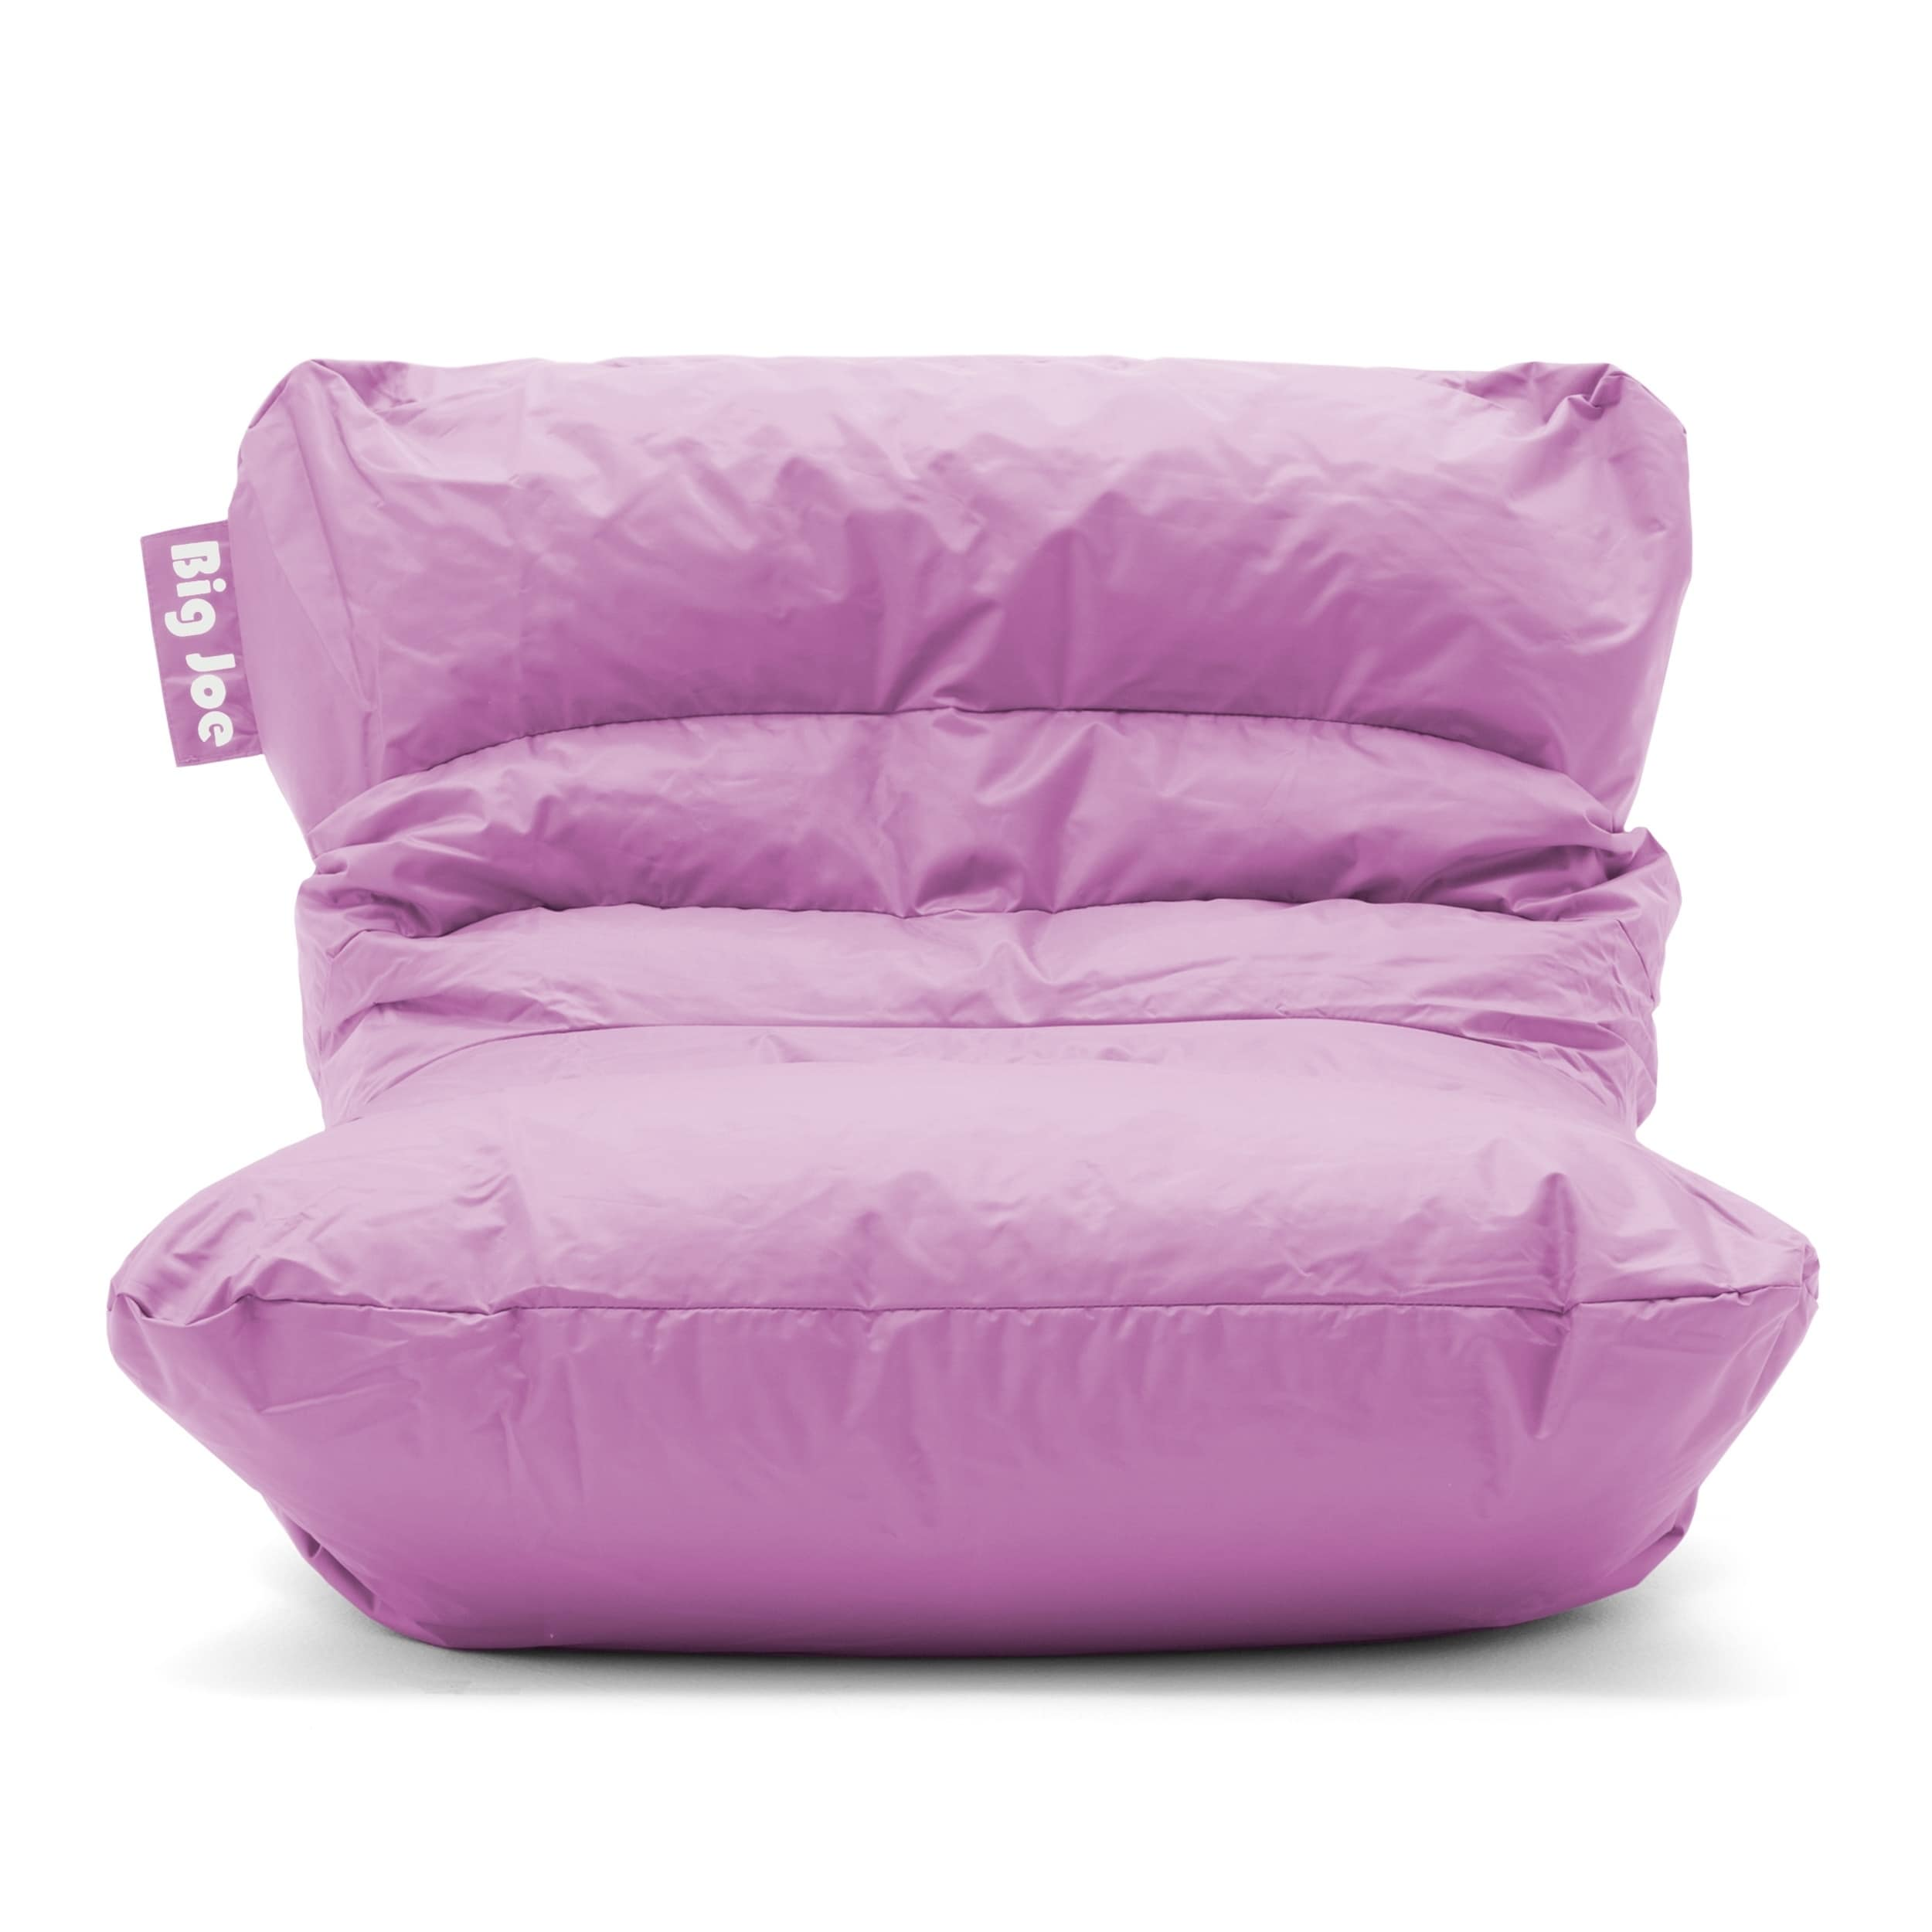 Shop Big Joe Roma Bean Bag Chair SmartMax - Free Shipping Today - Overstock.com - 16257655  sc 1 st  Overstock.com & Shop Big Joe Roma Bean Bag Chair SmartMax - Free Shipping Today ...